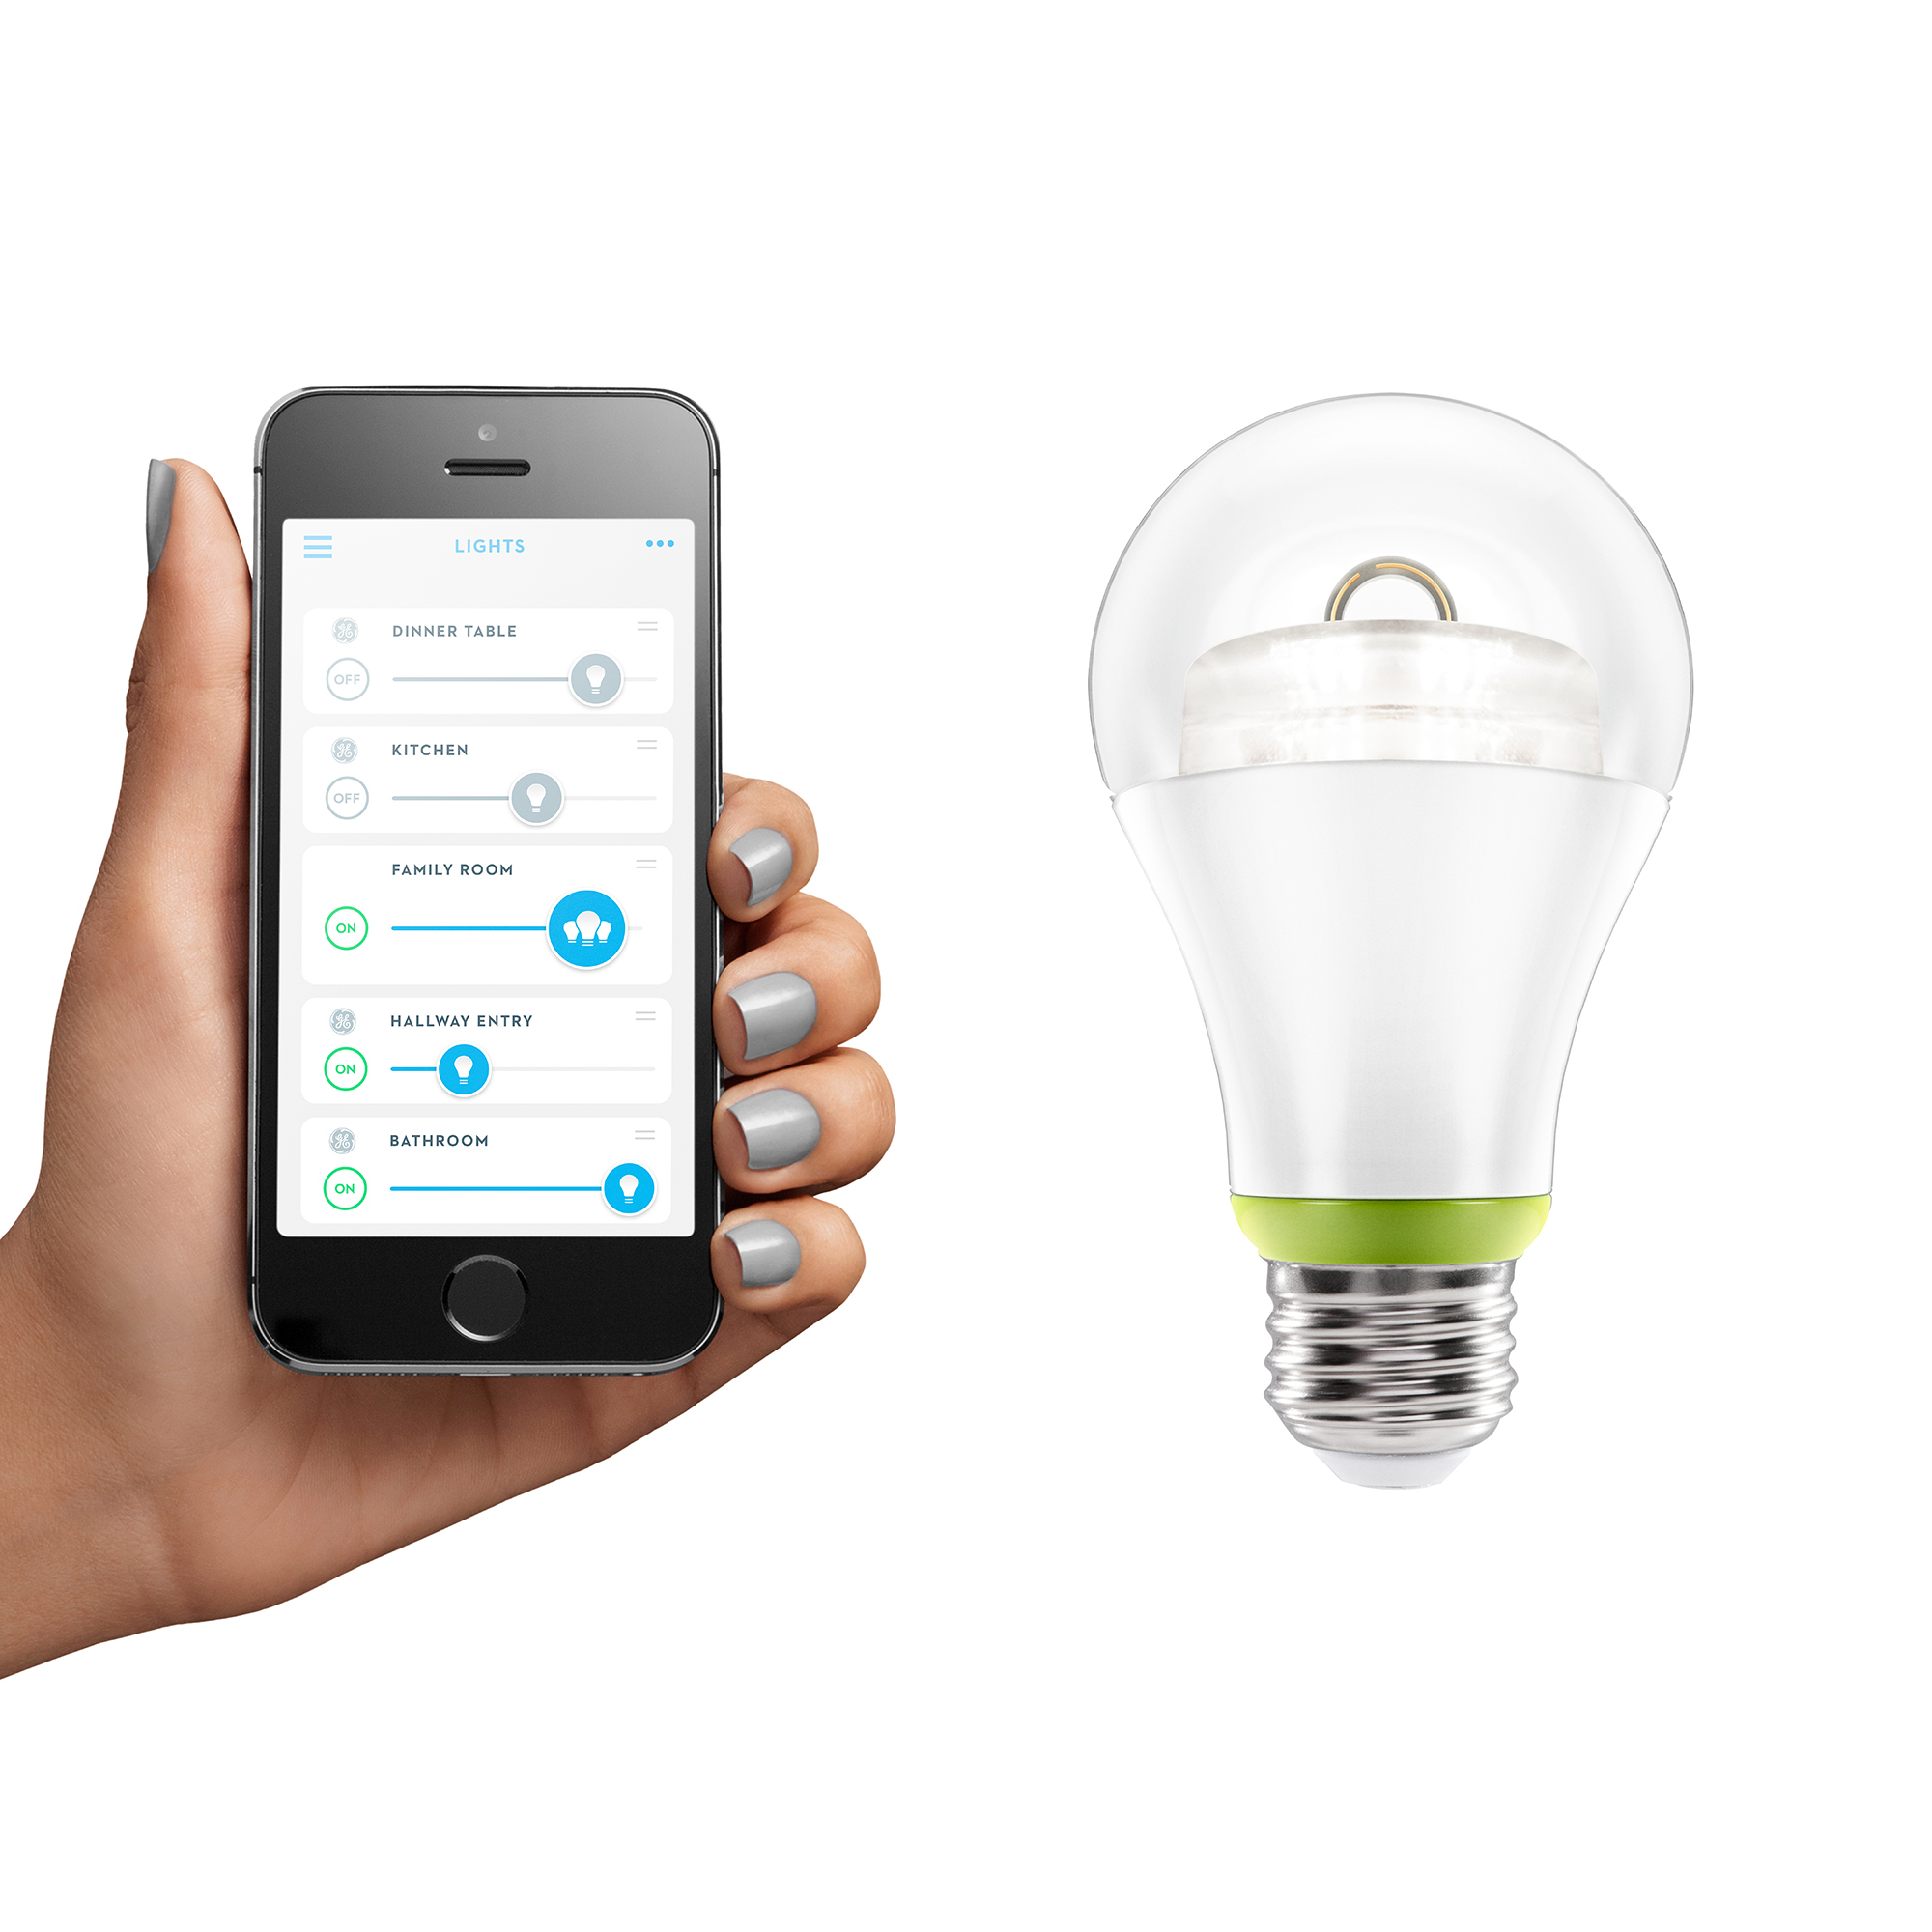 Floor Ge Announces Link Connected An Easy Way To Light Up Your Home Business Wire Ge Announces Link Connected An Easy Way To Light houzz 01 Affordable Quality Lighting